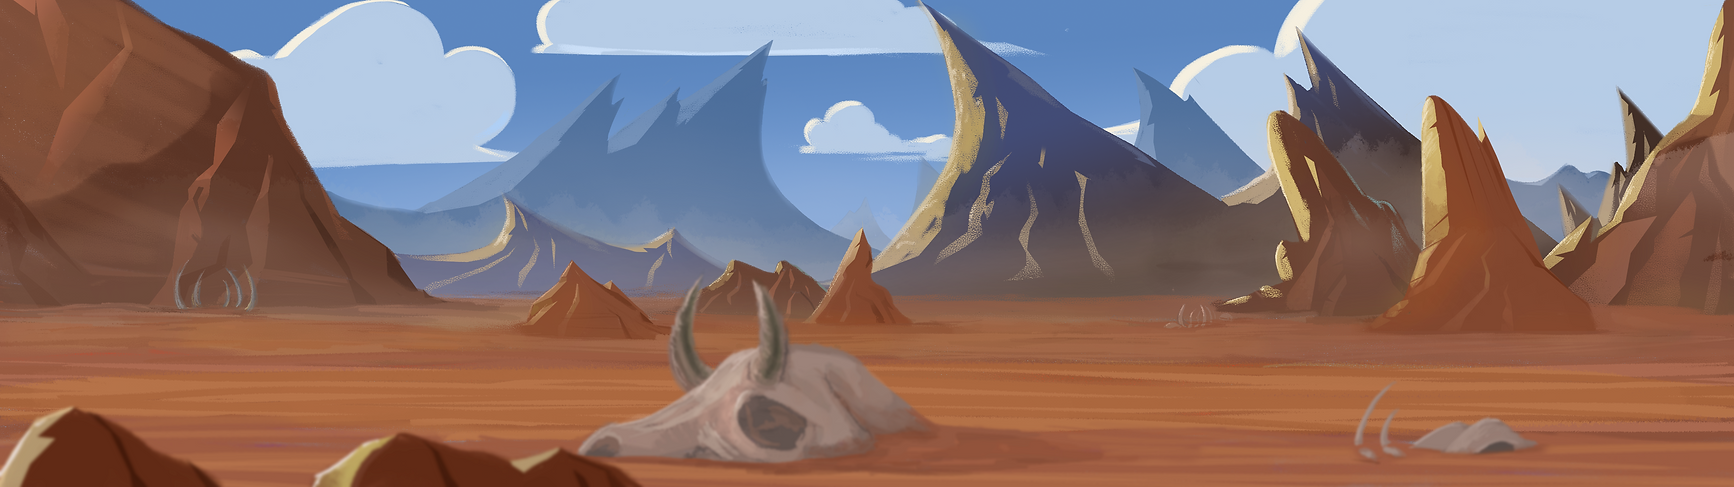 background4dragon.png